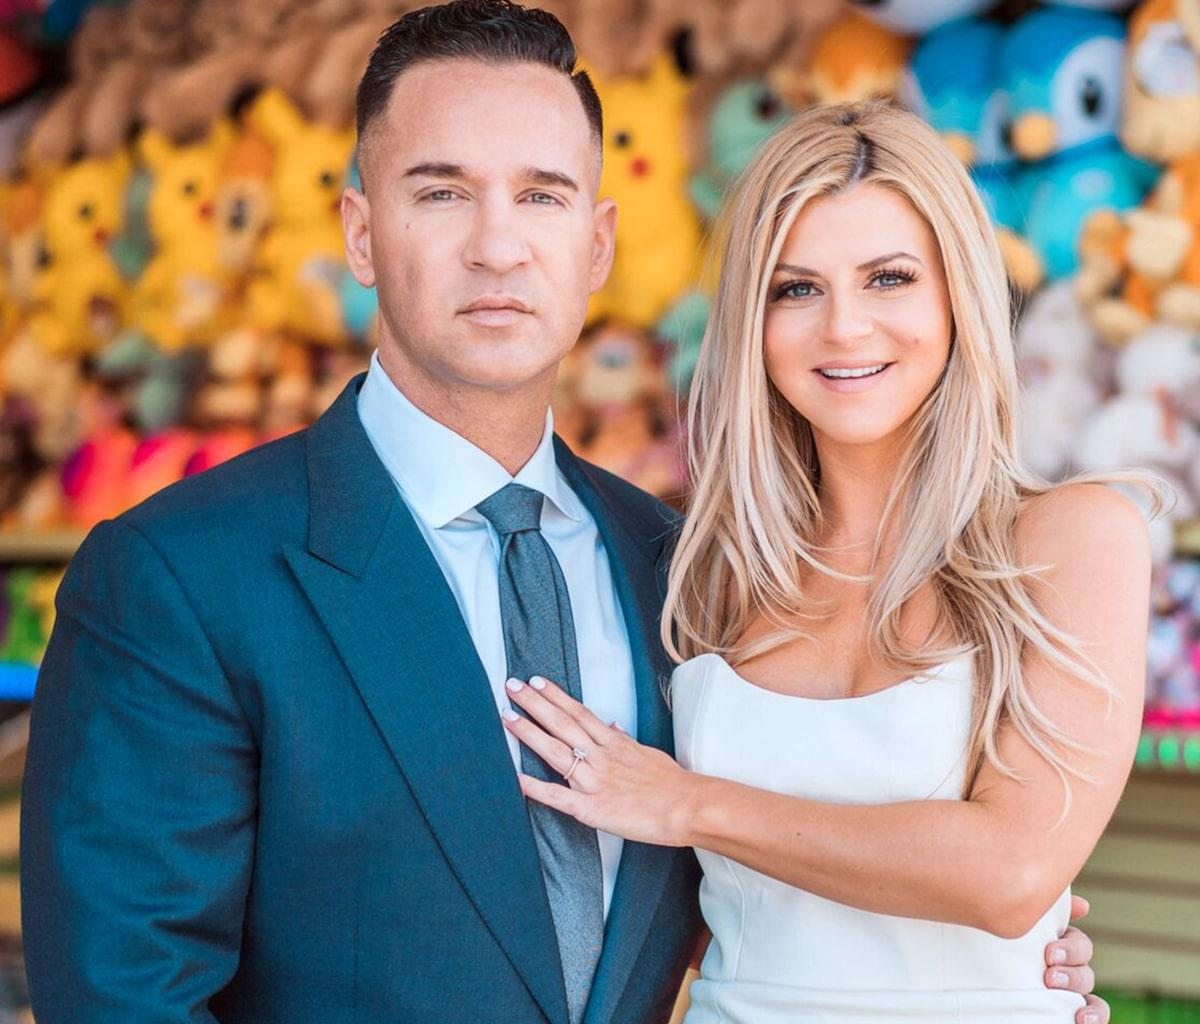 Mike 'The Situation' Sorrentino And His Wife Lauren Pesce Are Officially Parents - See The First Pics Of Their Baby!